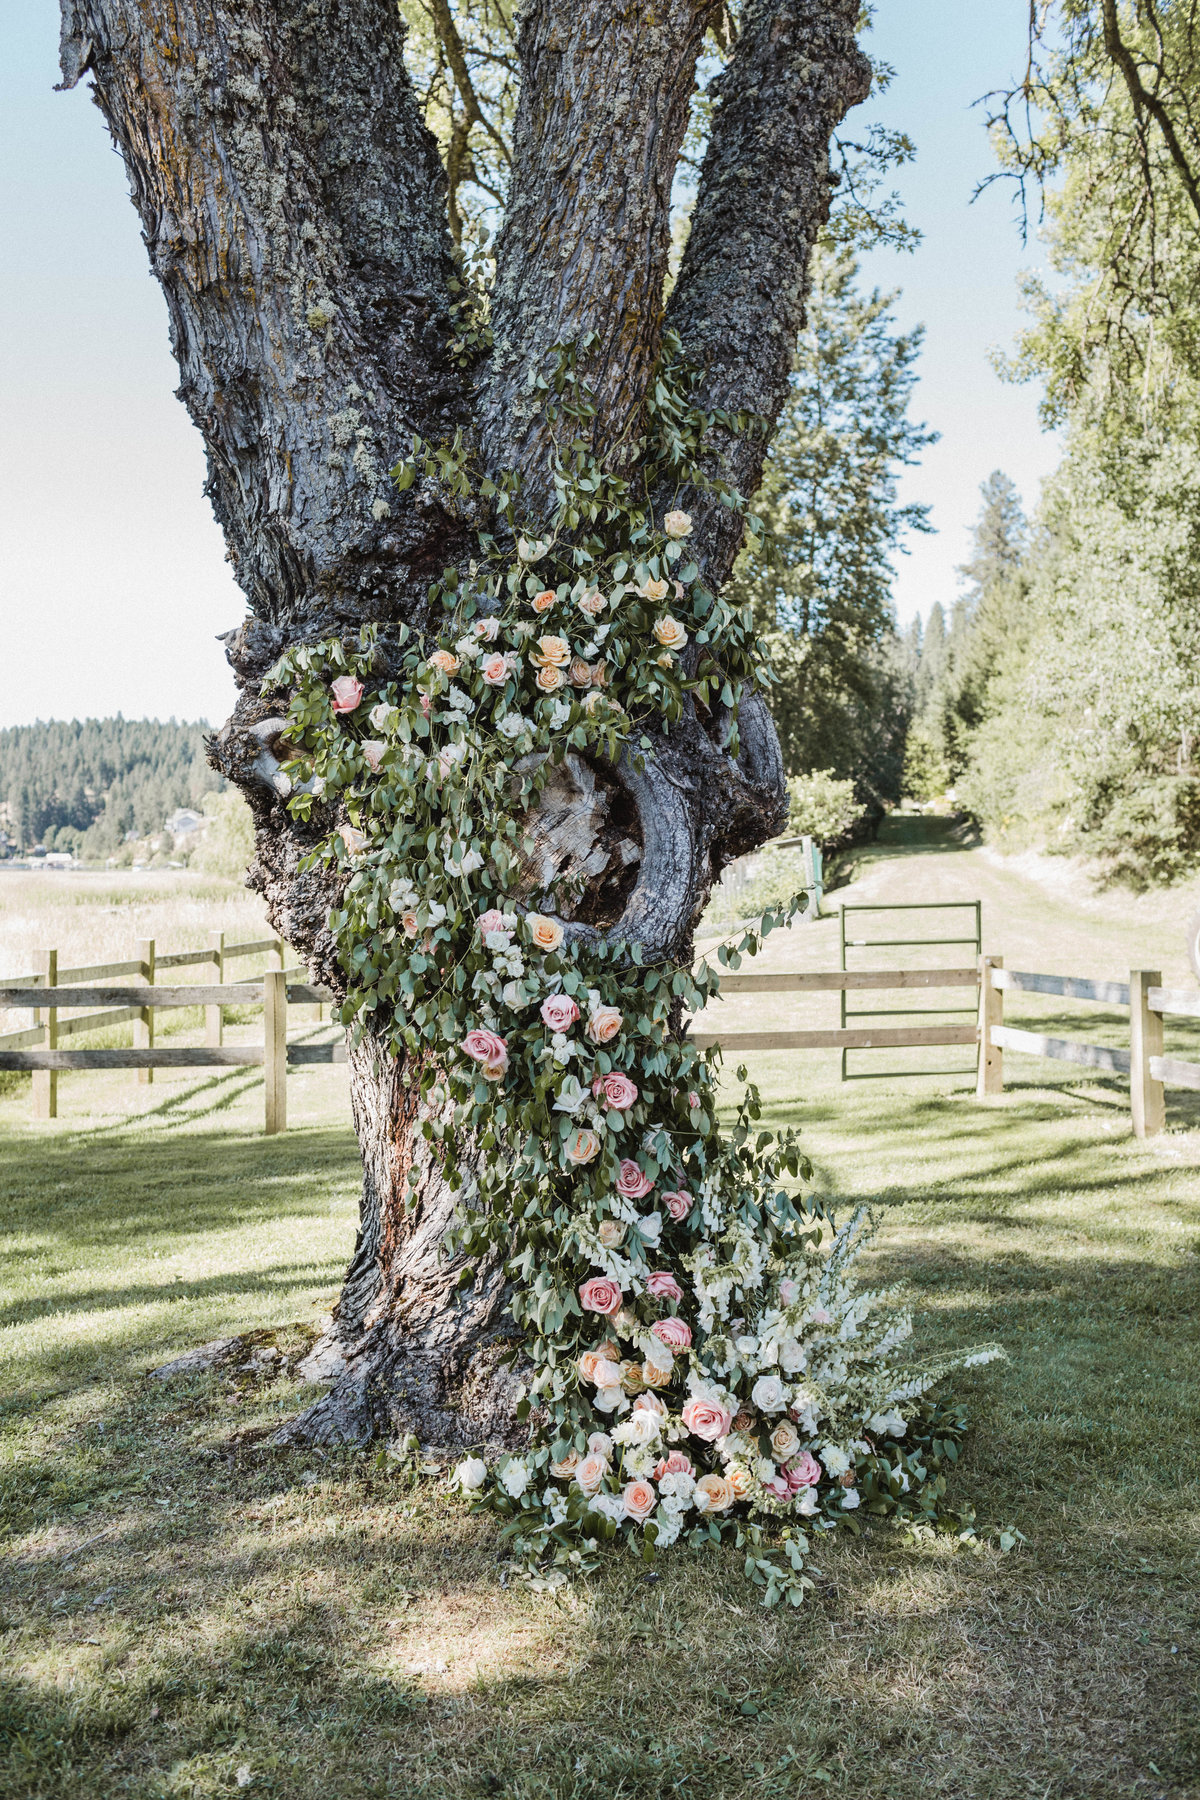 JB Wedding - CEREMONY FLORAL TREE - sarah-falugo-julianne-hough-brooks-laich-wedding-3690